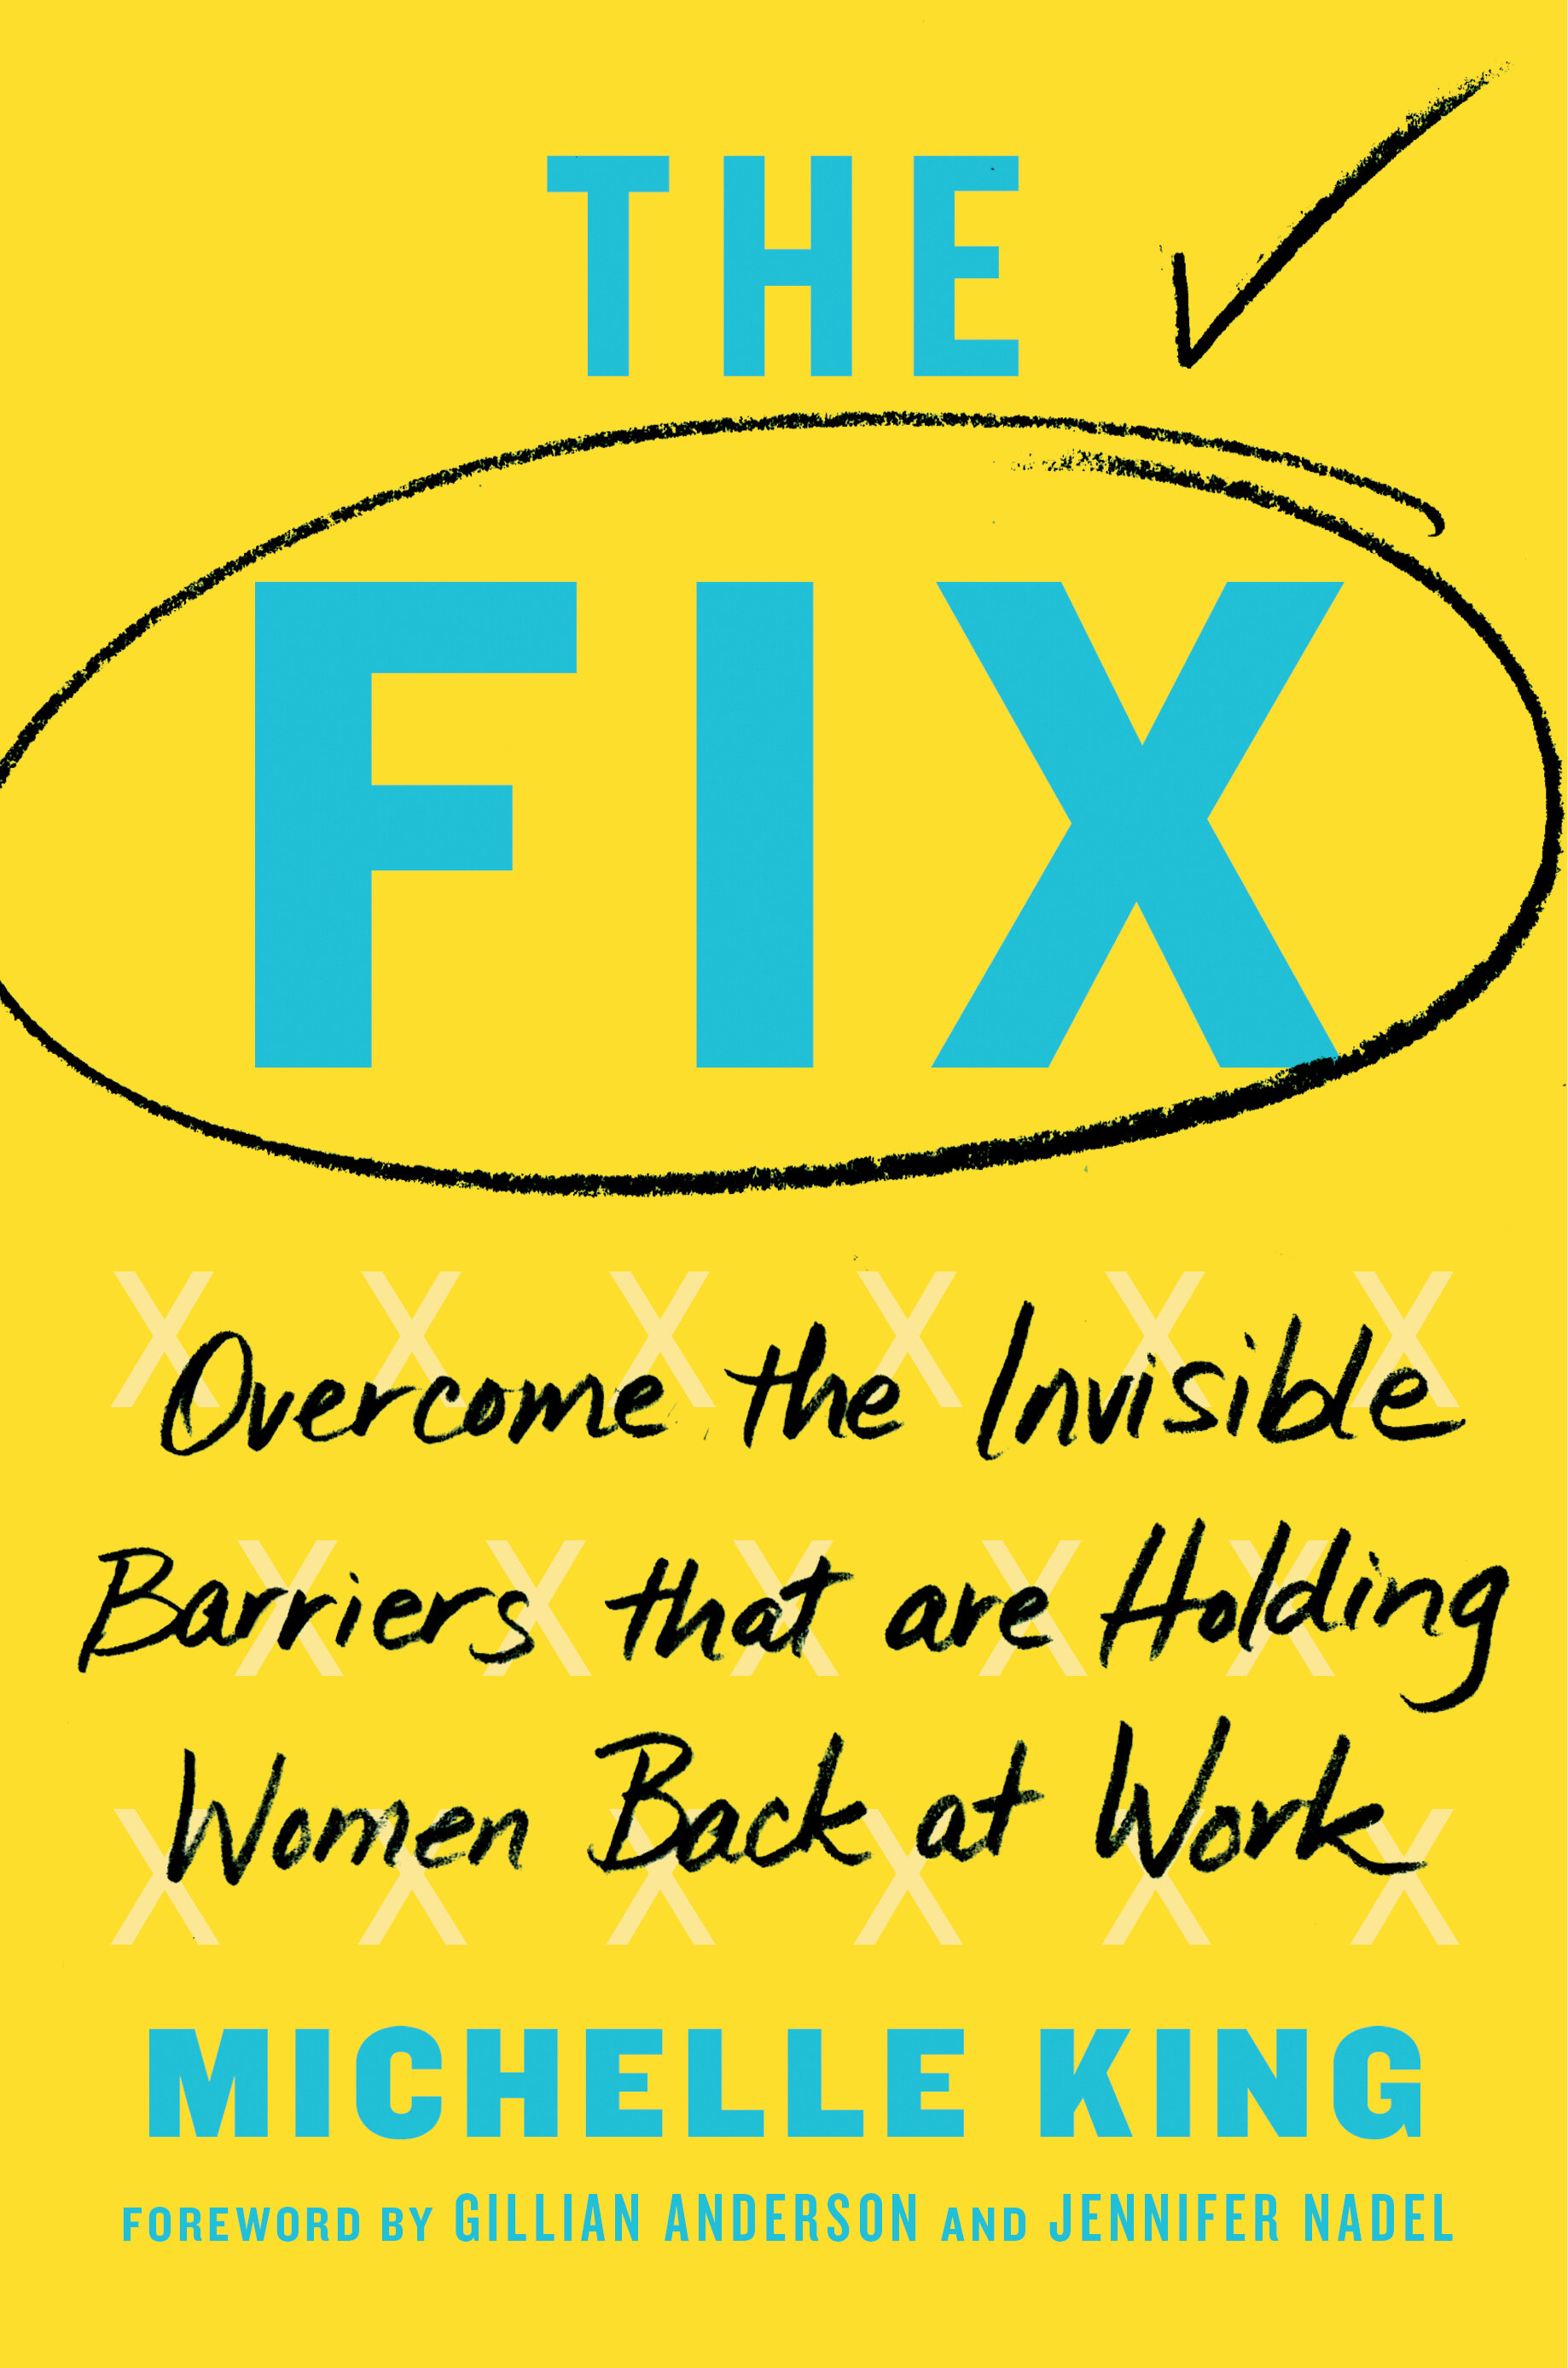 The-Fix_Overcome-Invisible-Barriers-Holding-Women-Back-at-Work.jpg